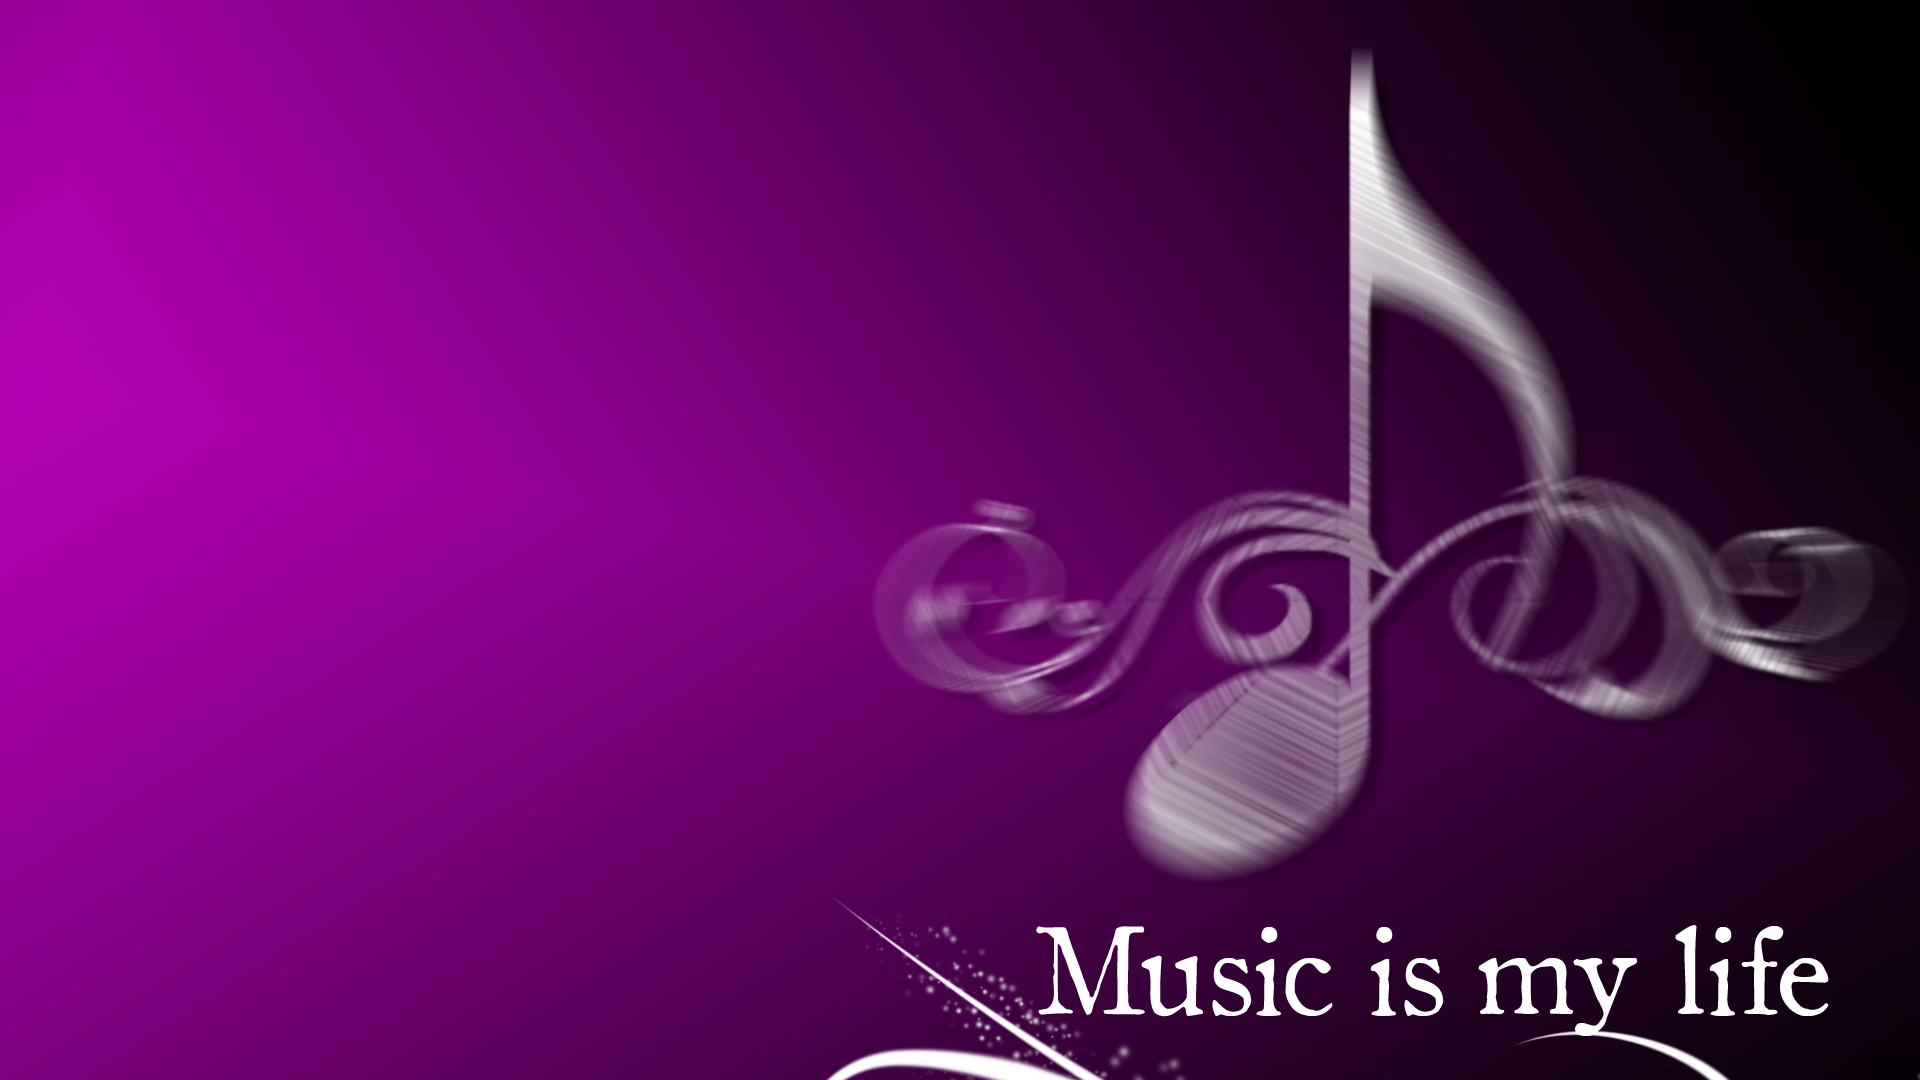 Music Is My Life 2 By Martincom On Deviantart